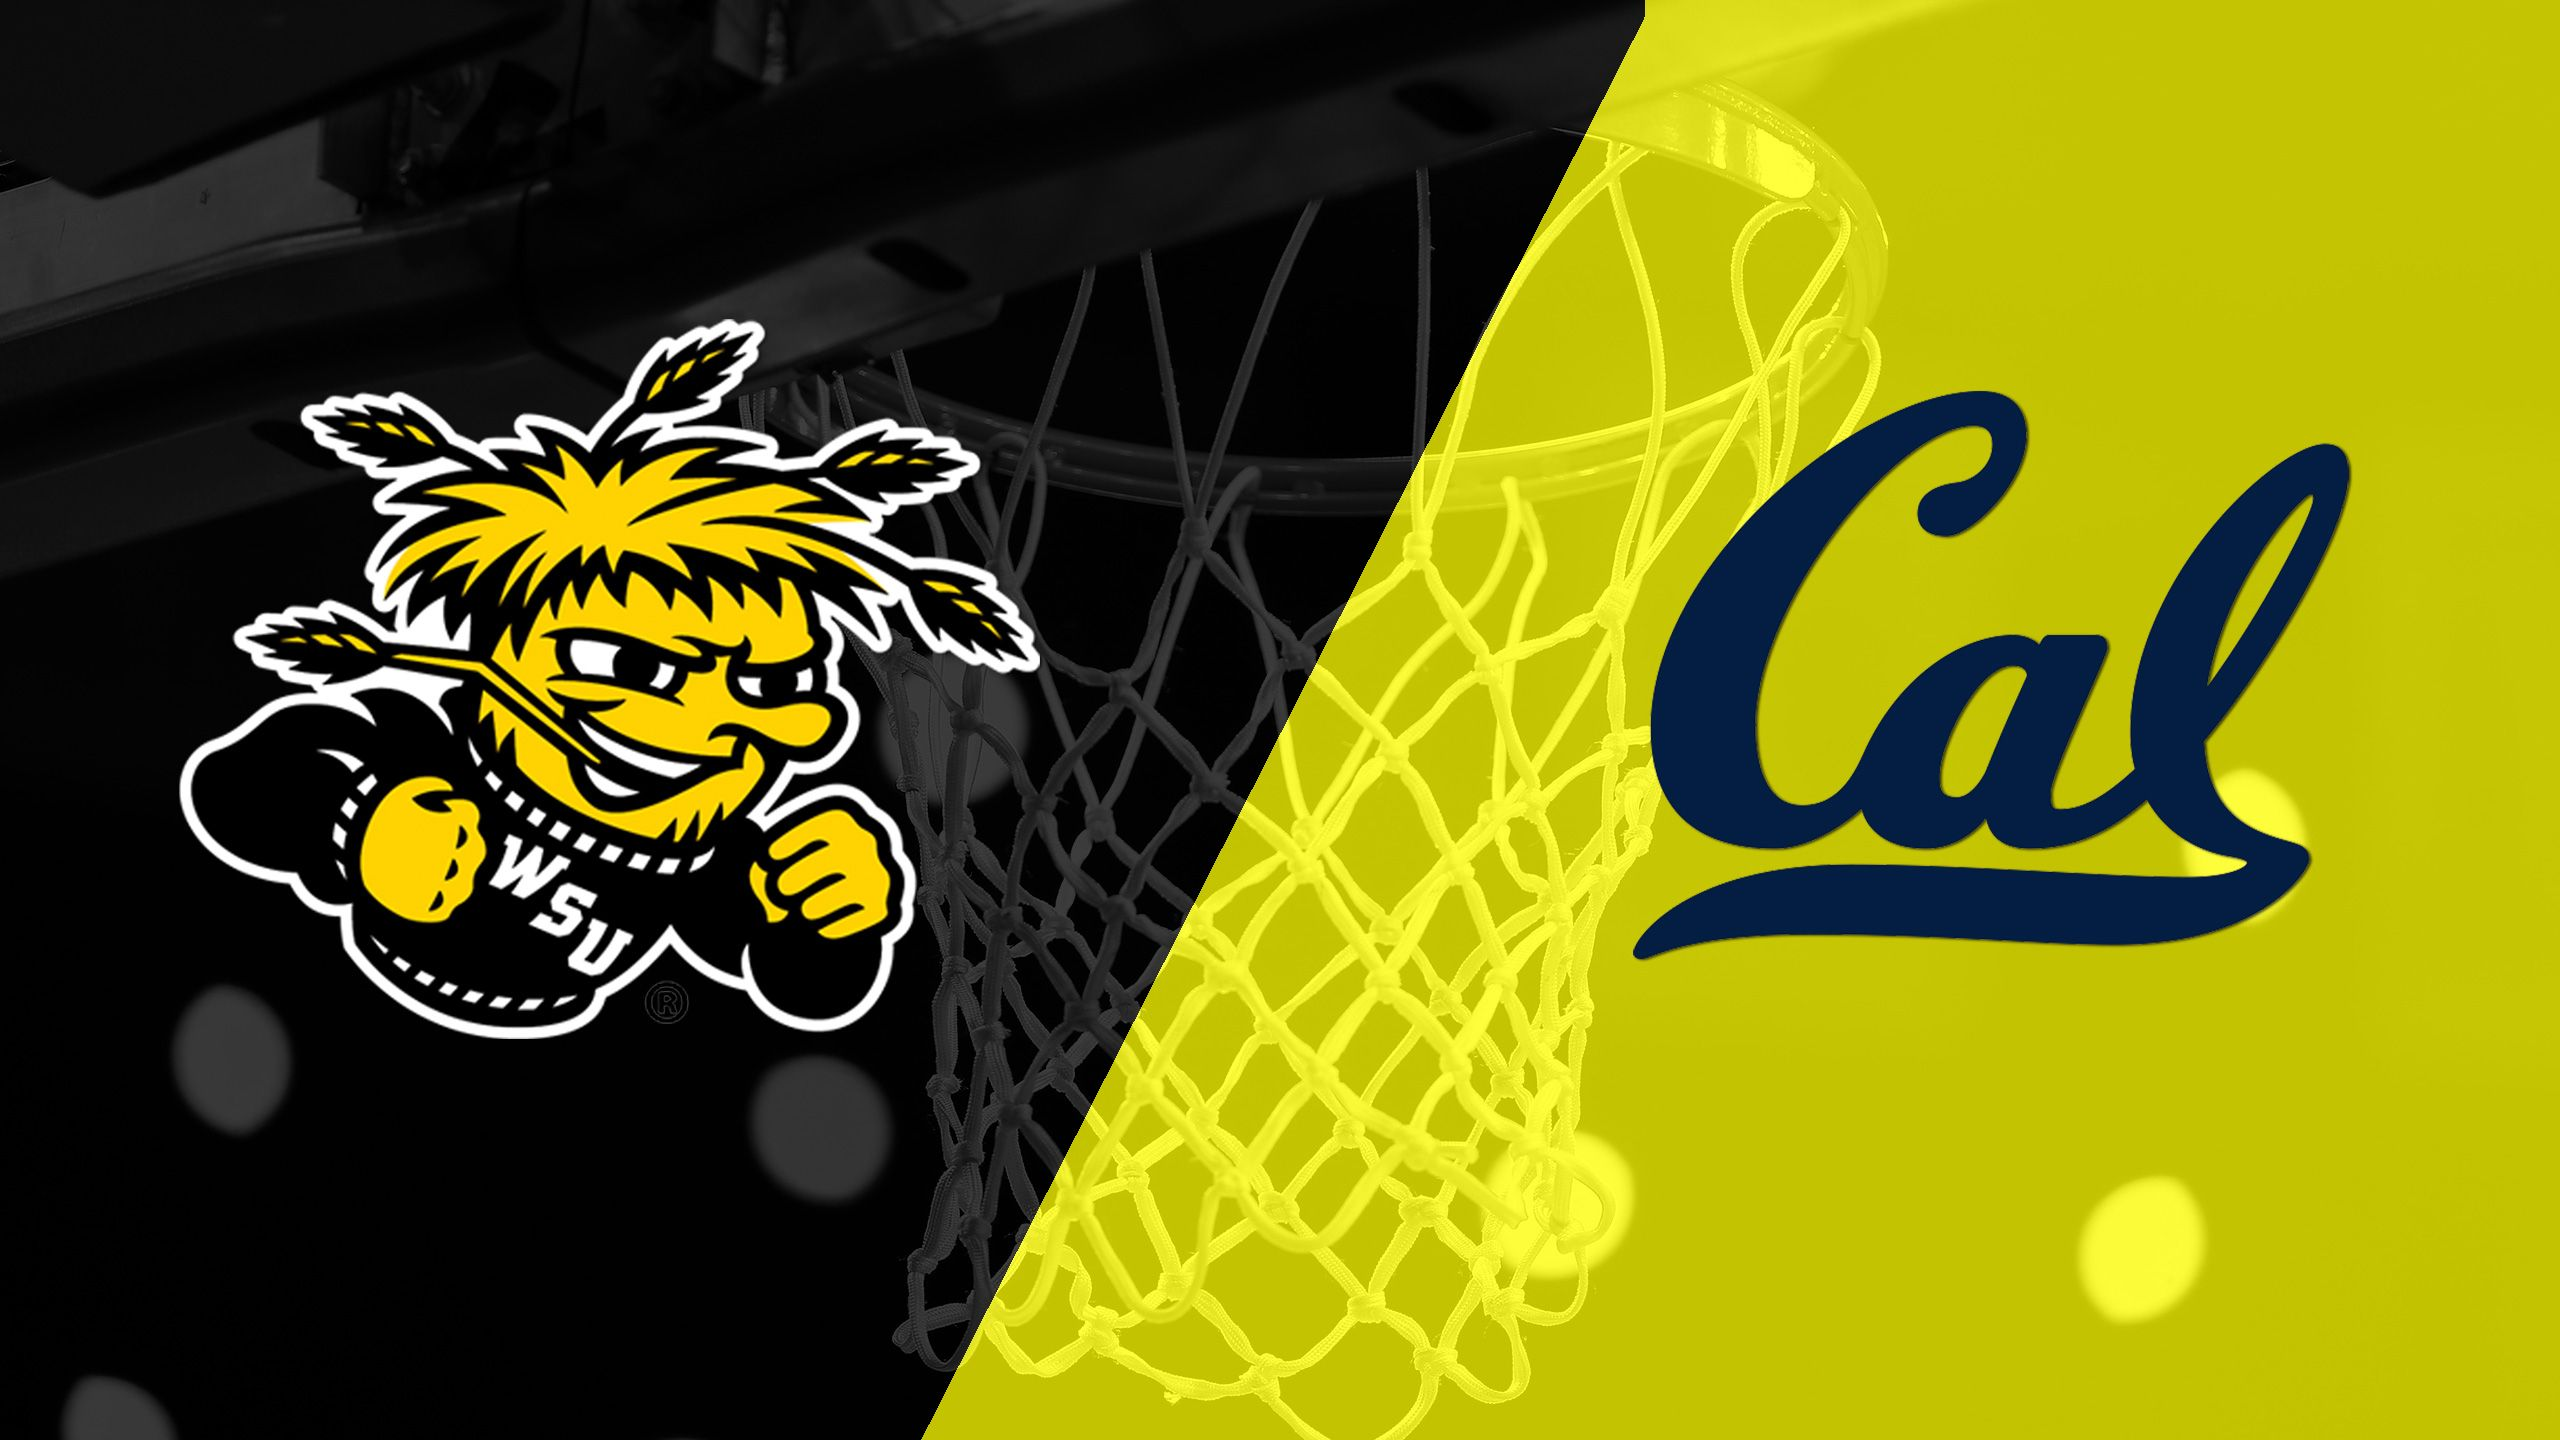 #6 Wichita State vs. California (Quarterfinal #2) (Maui Invitational)